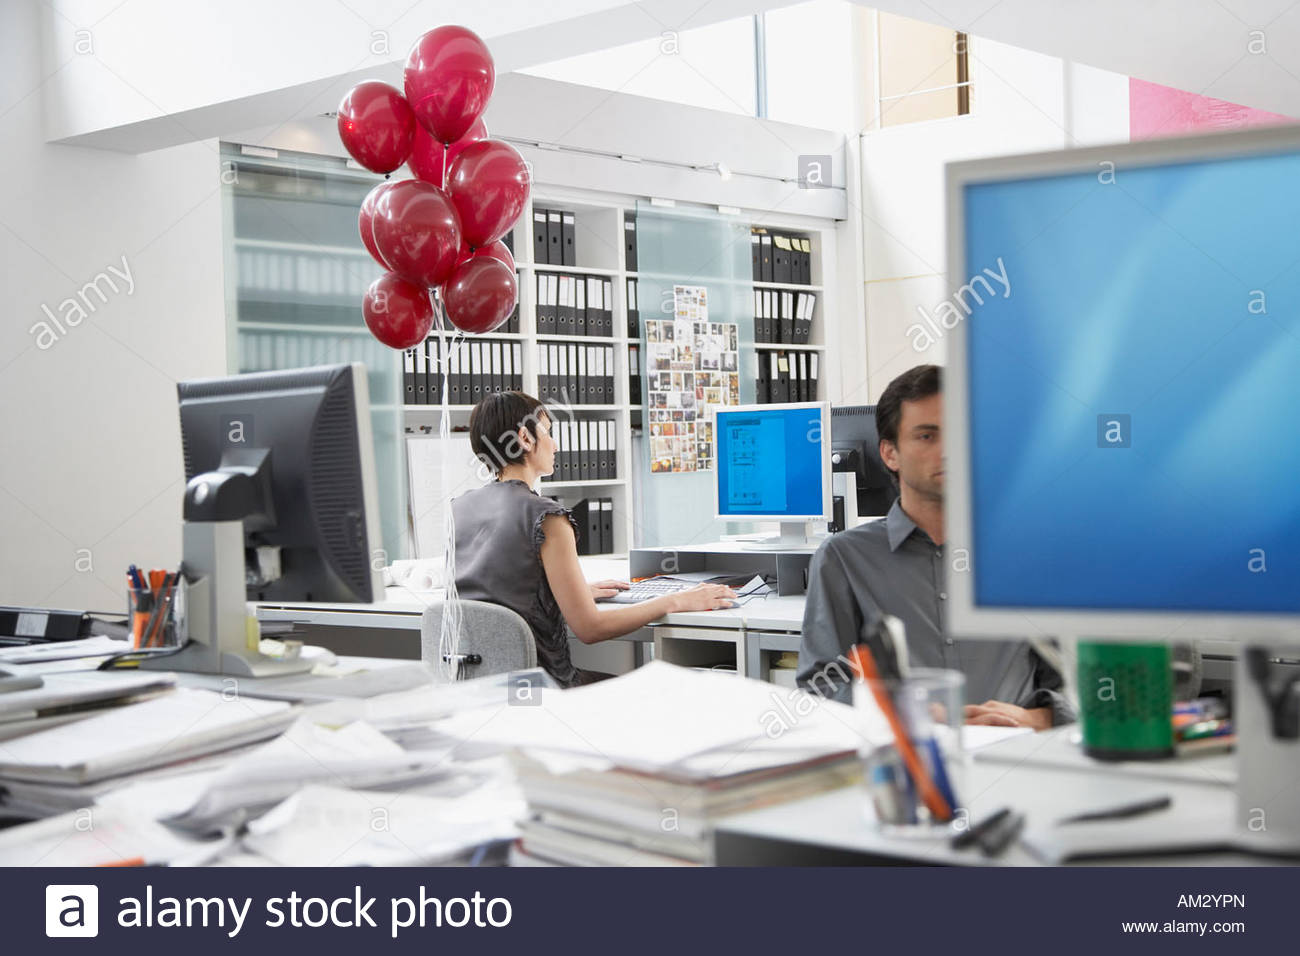 Businesswoman at desk with balloons tied to chair and coworker in foreground Stock Photo